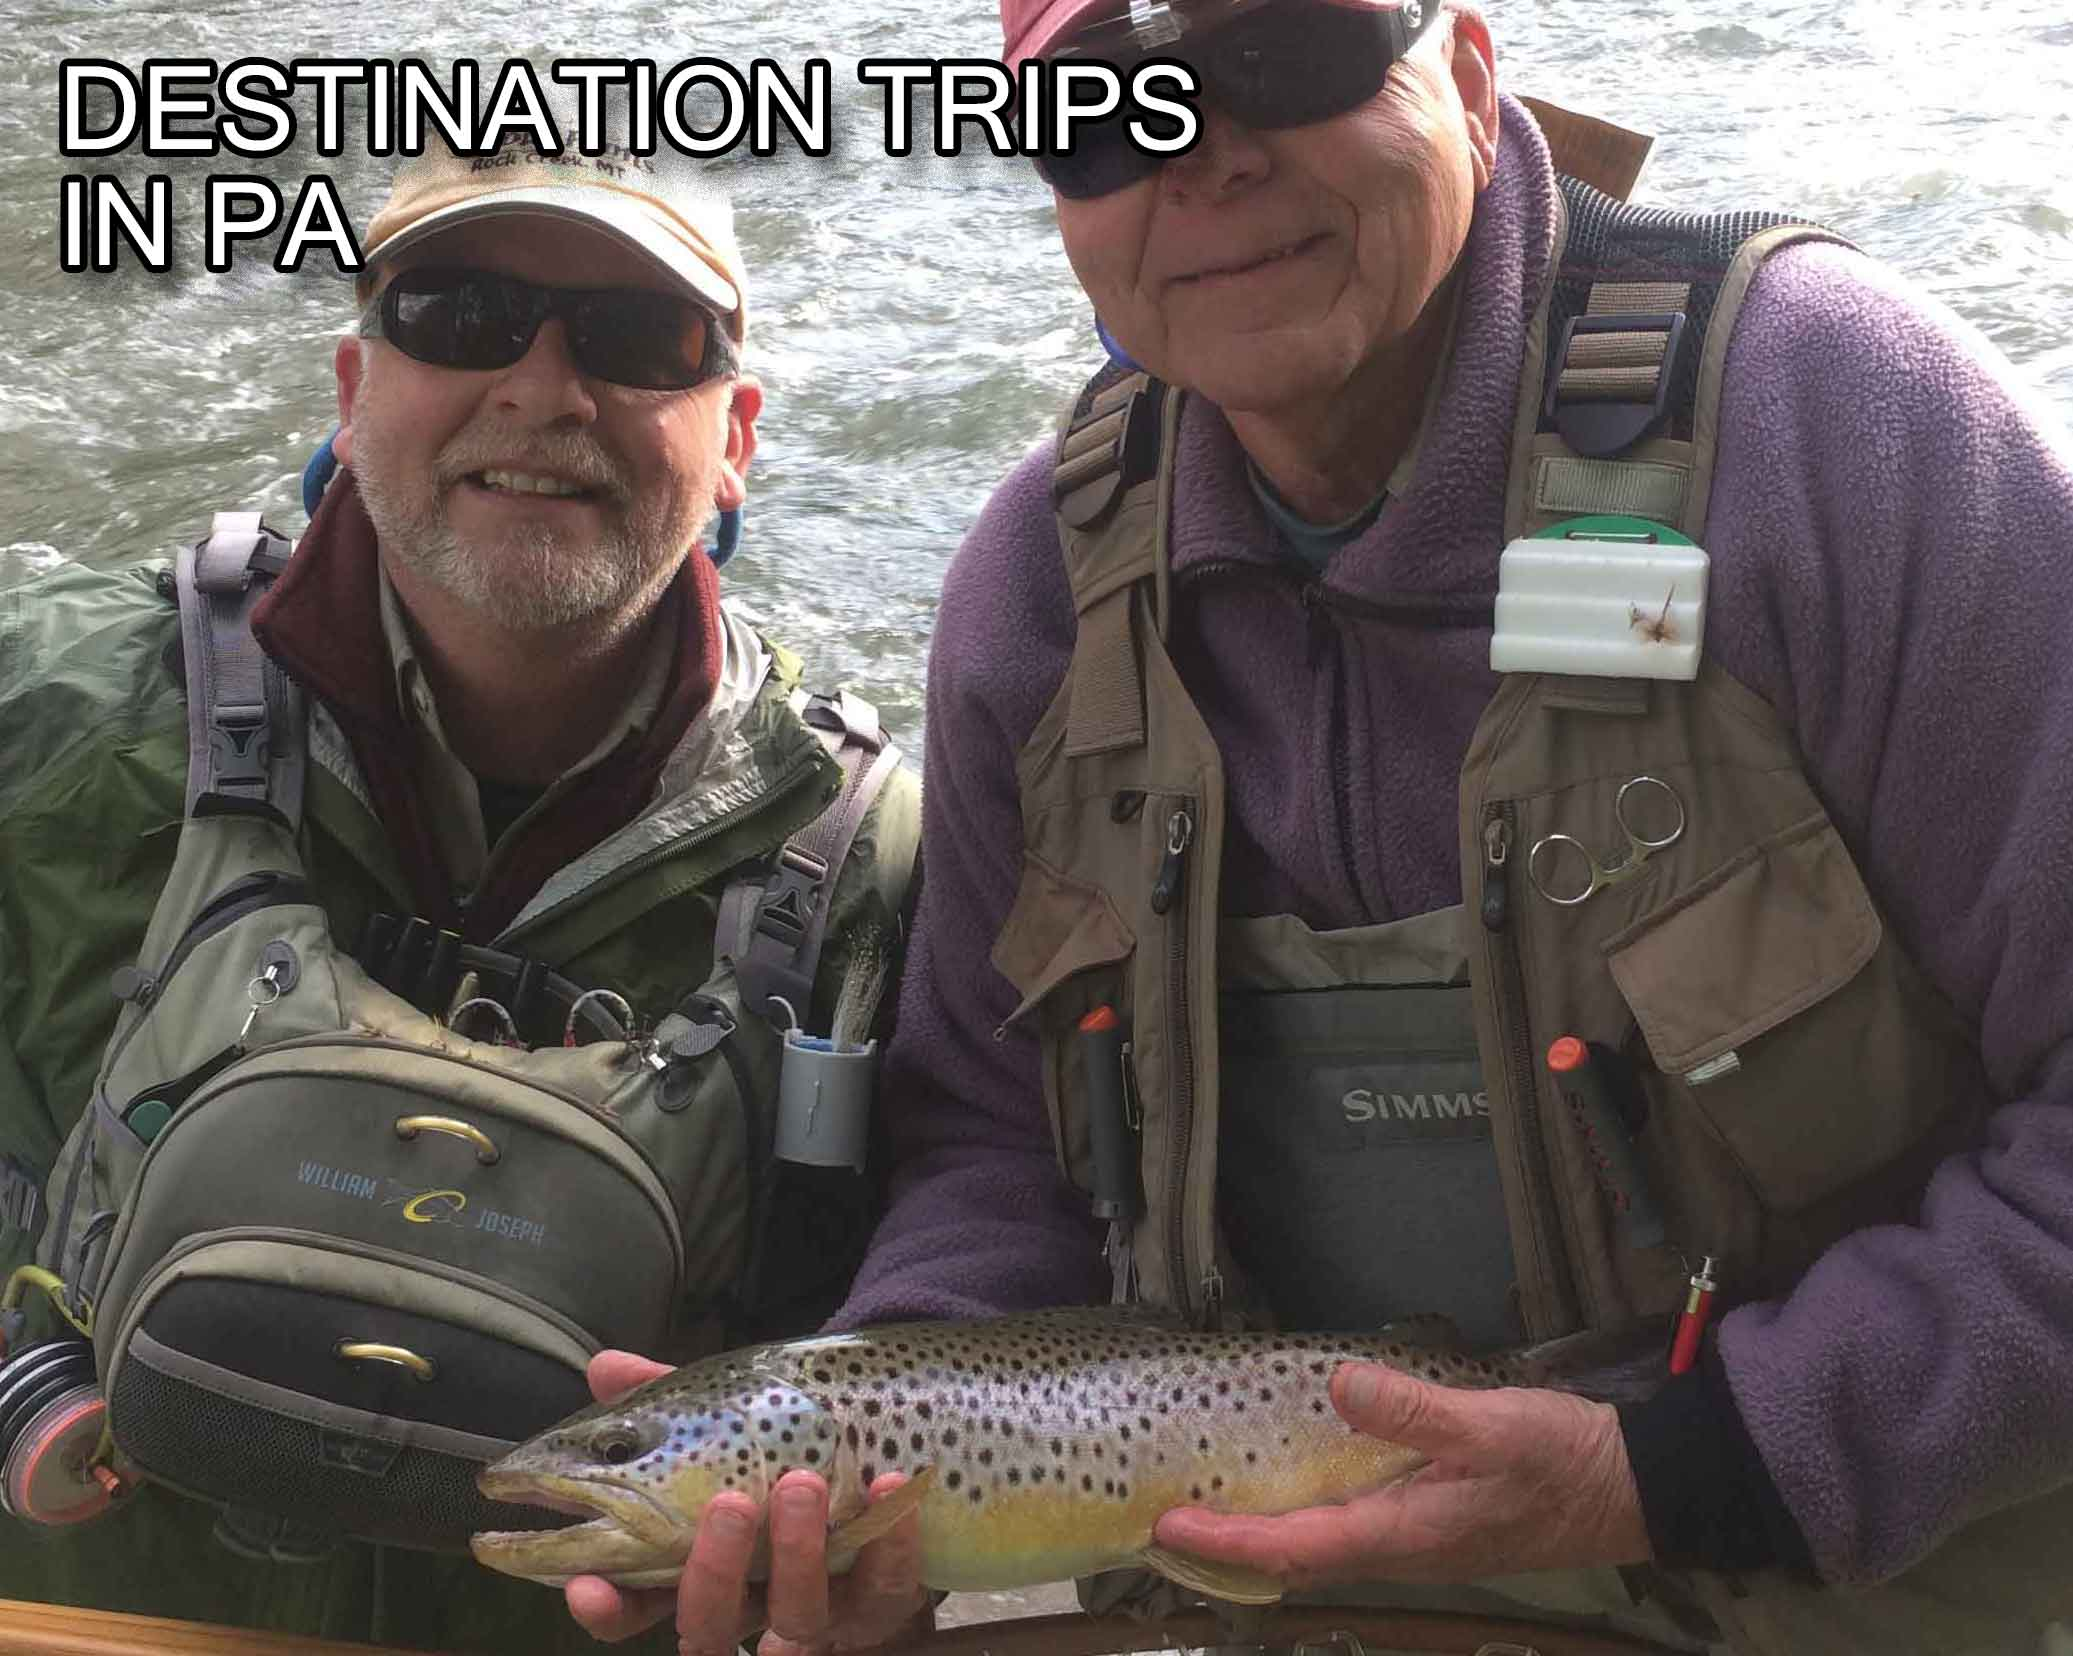 Enjoy One Of Our All Inclusive  (Food, Lodging and Guiding) Trips In Central Pennsylvania, Penns Creek, Spring Creek and Little Juniata